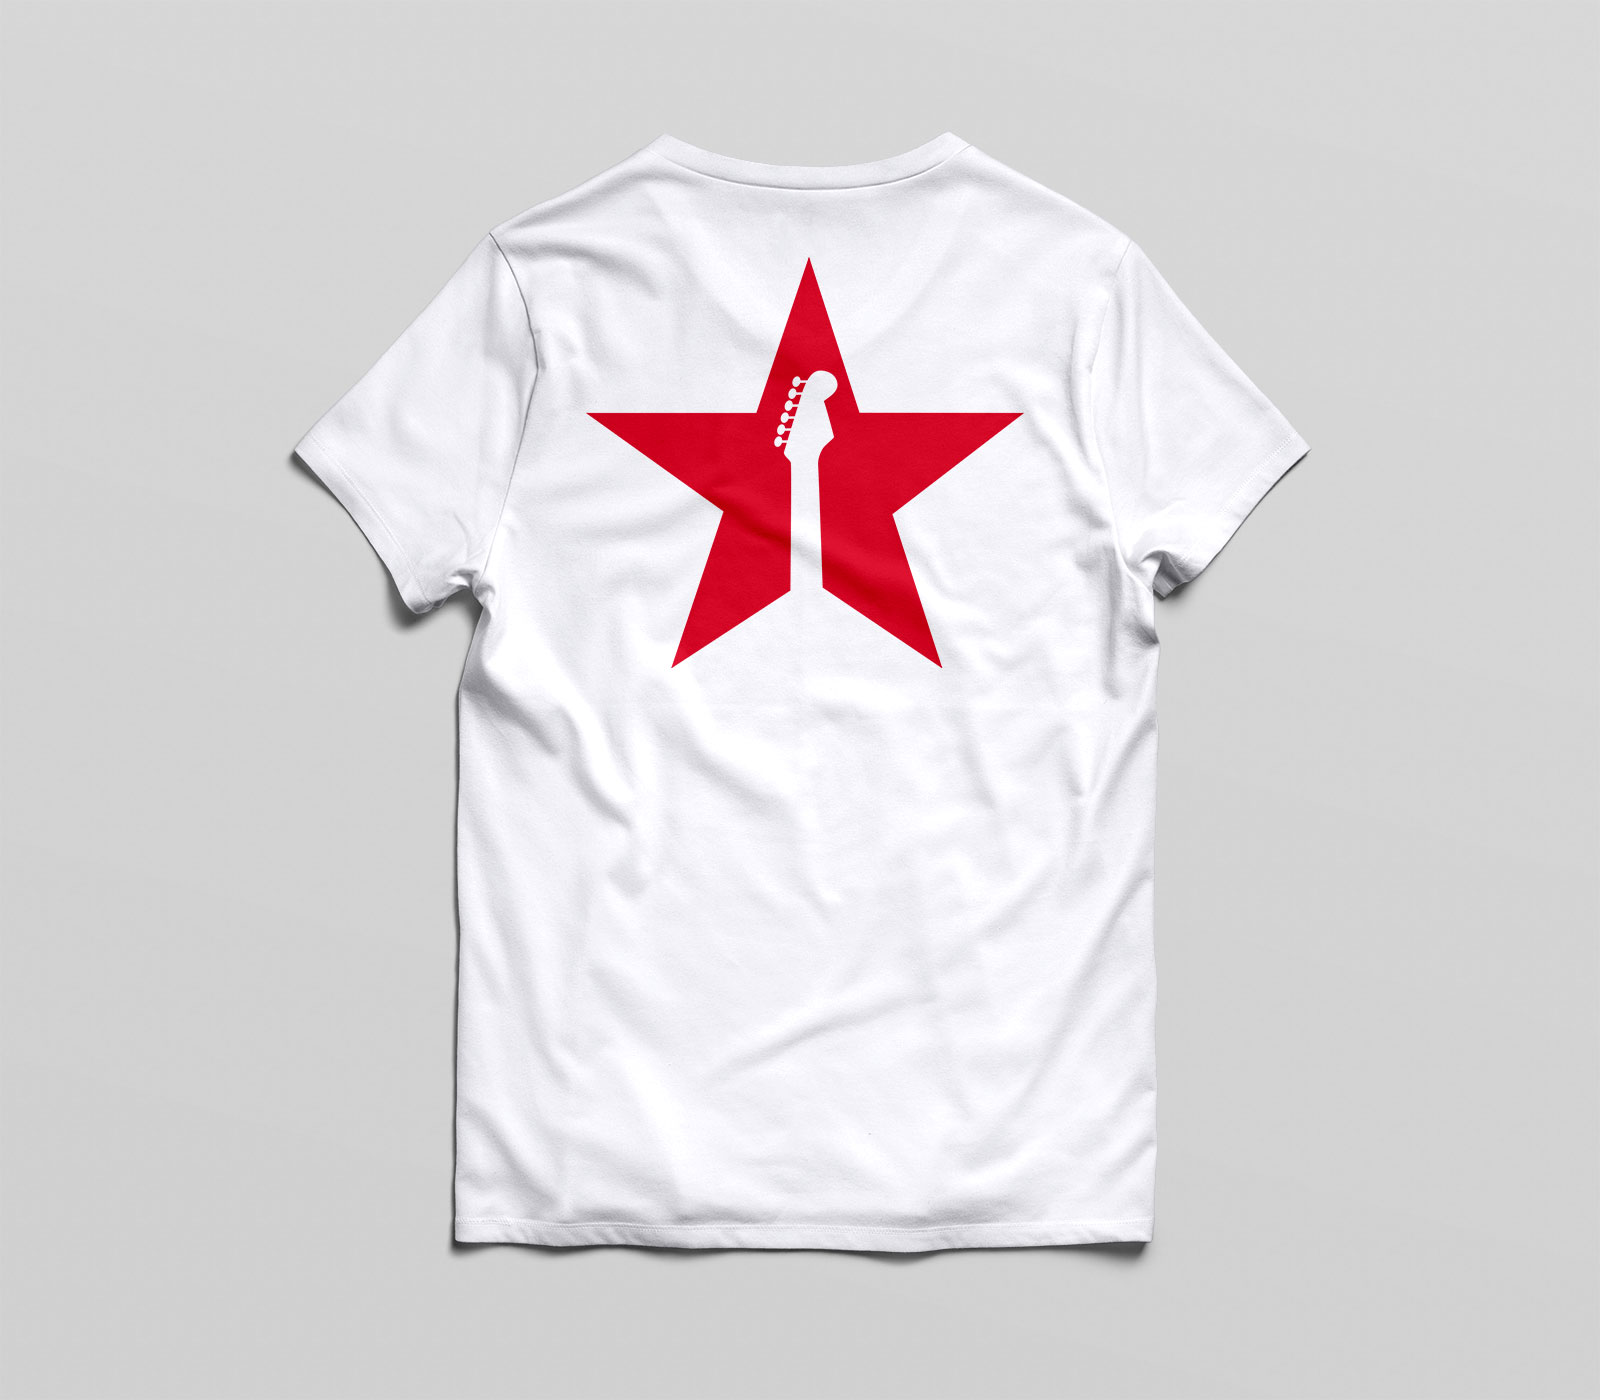 red star tee white back